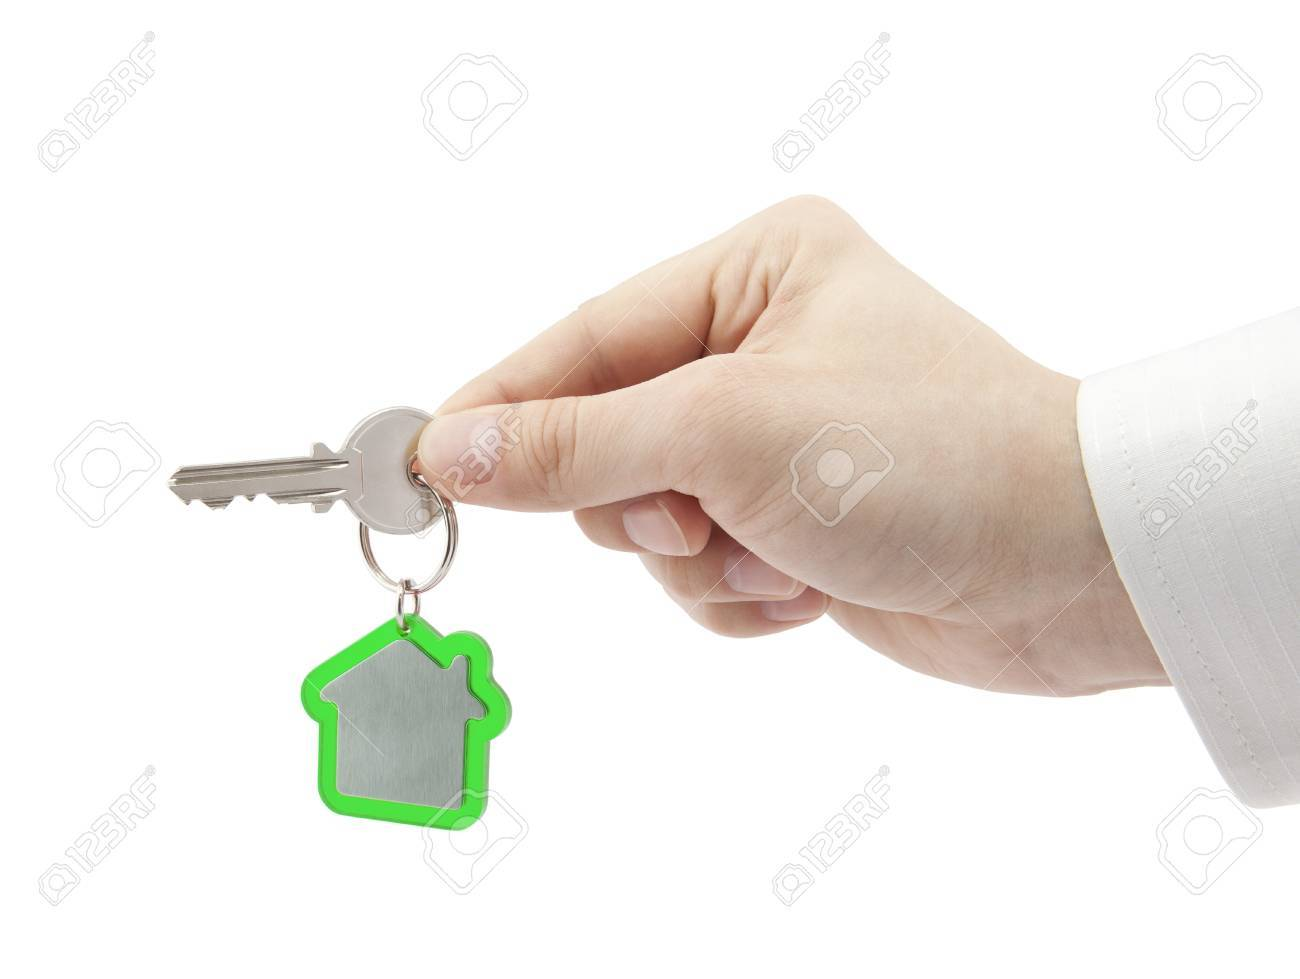 House key in hand Stock Photo - 16259326